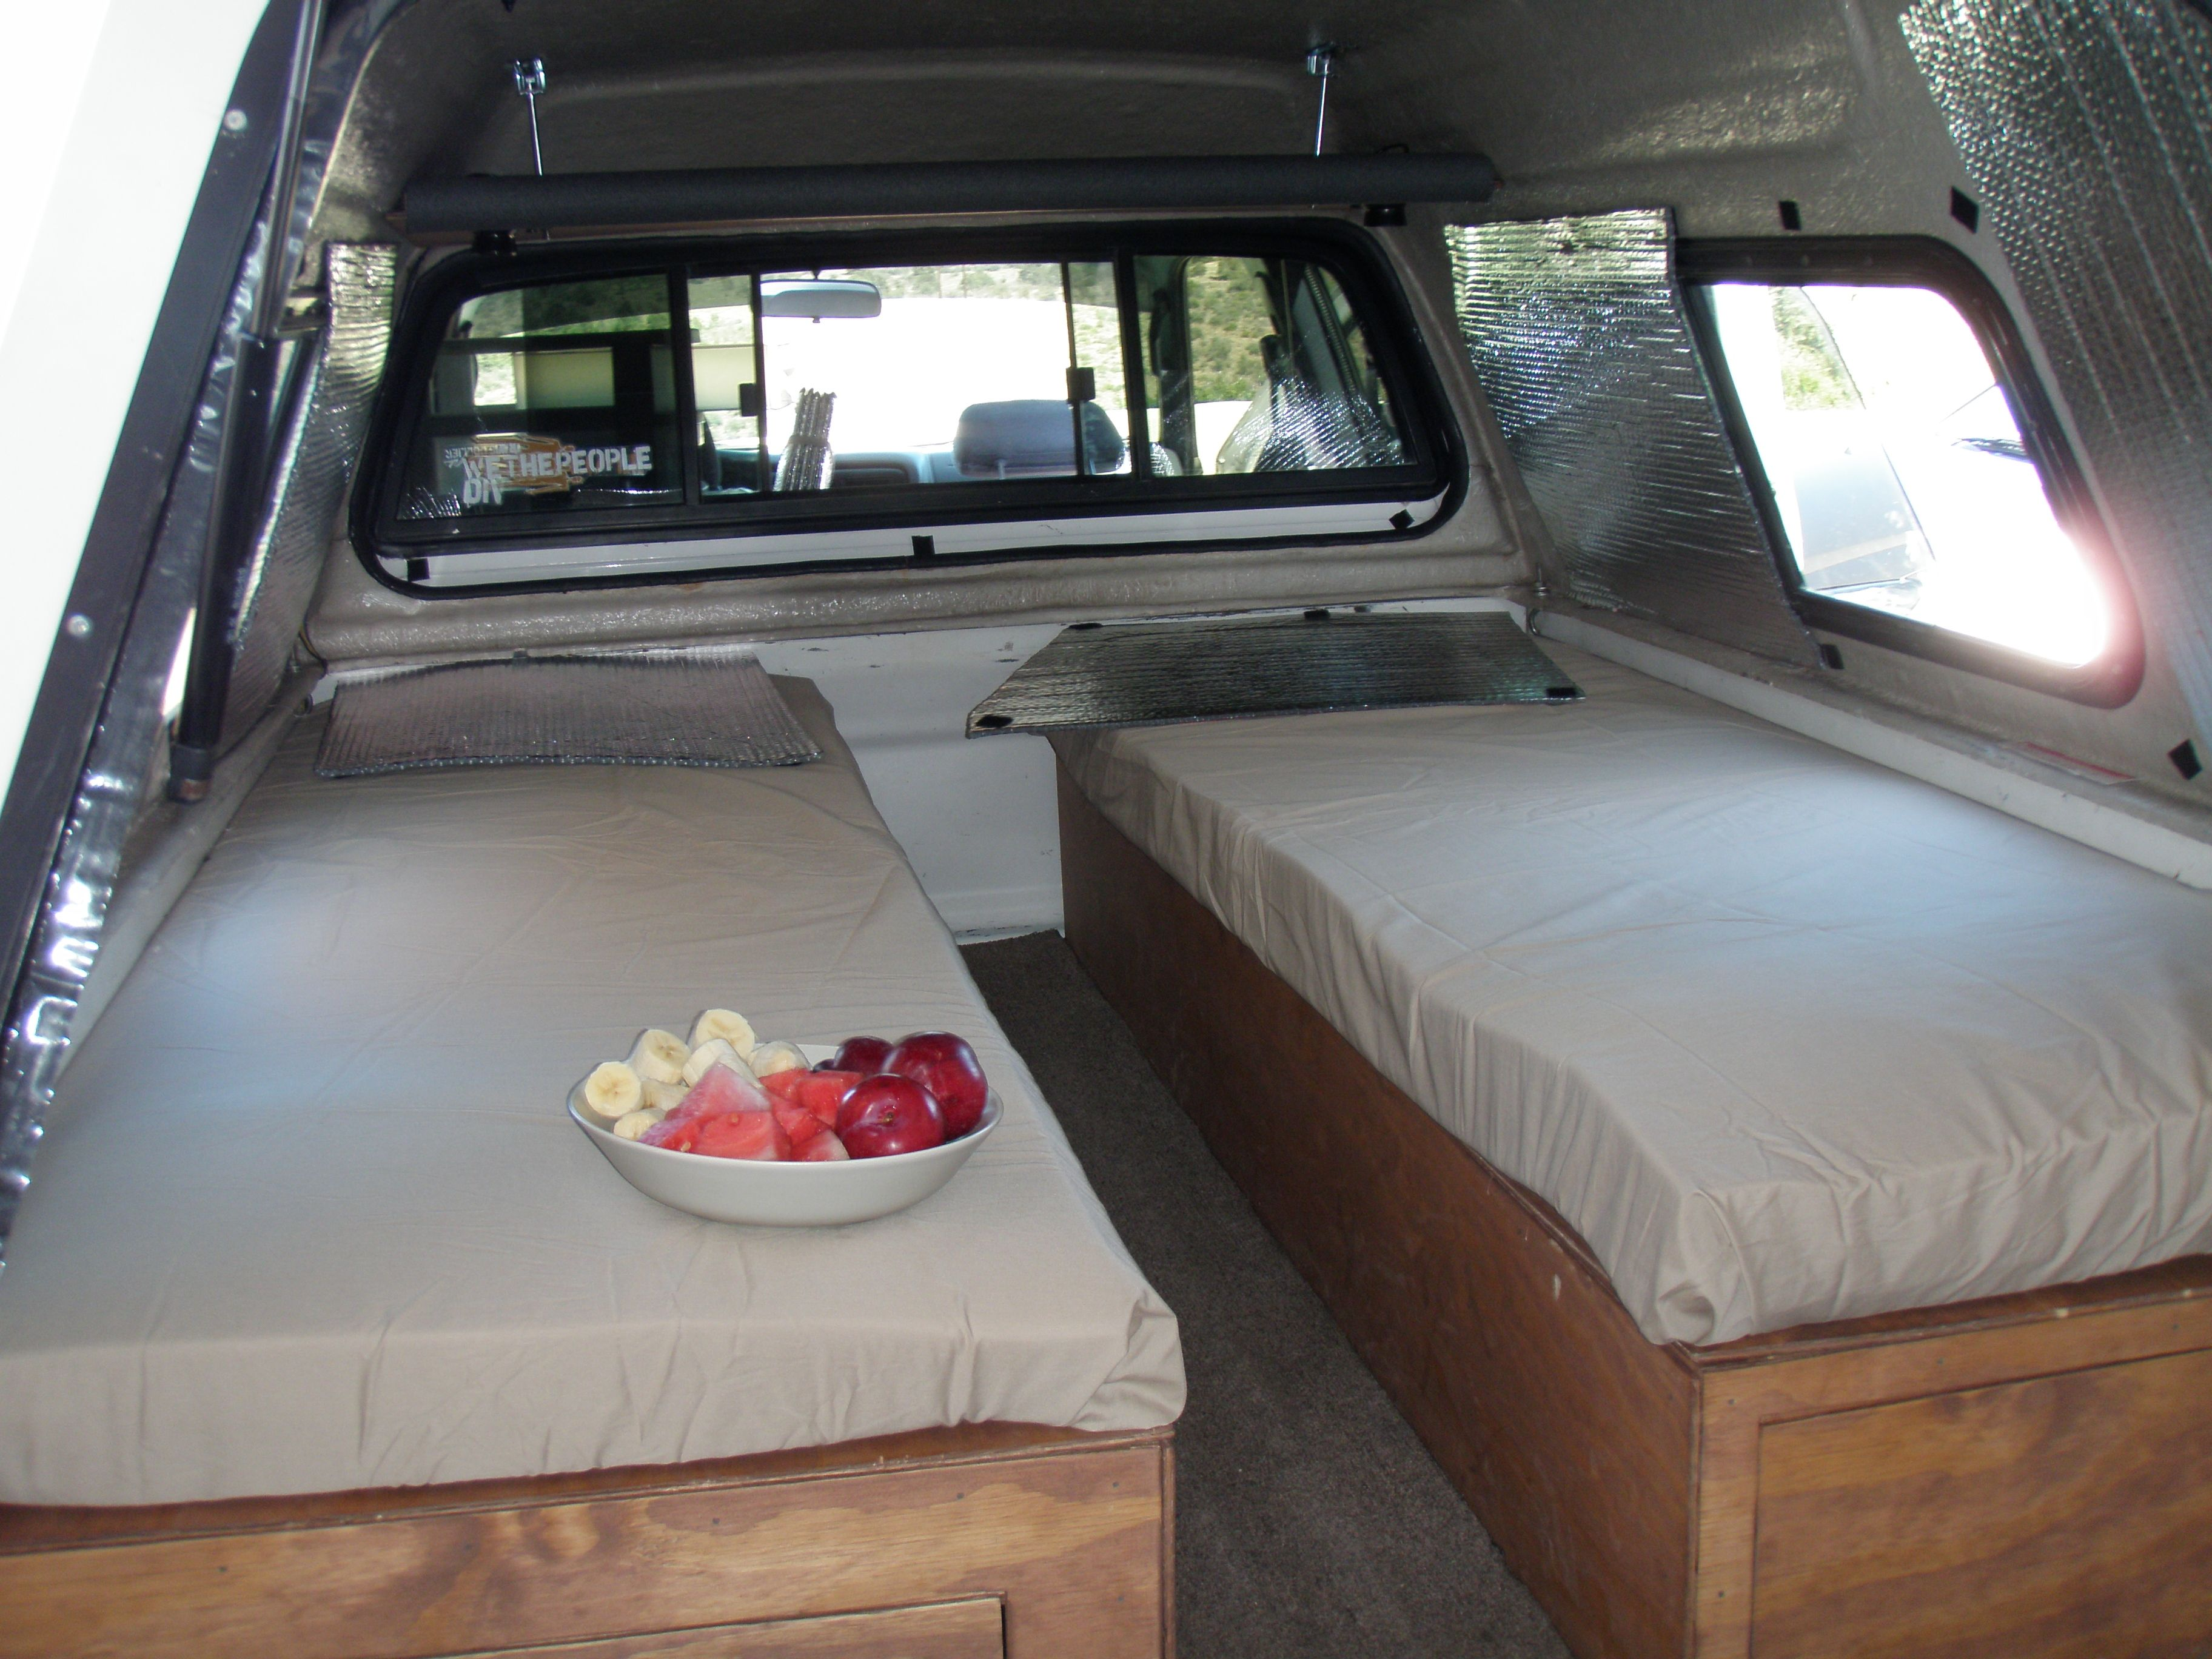 Toyota Truck Bed Camper Build a different take, i like